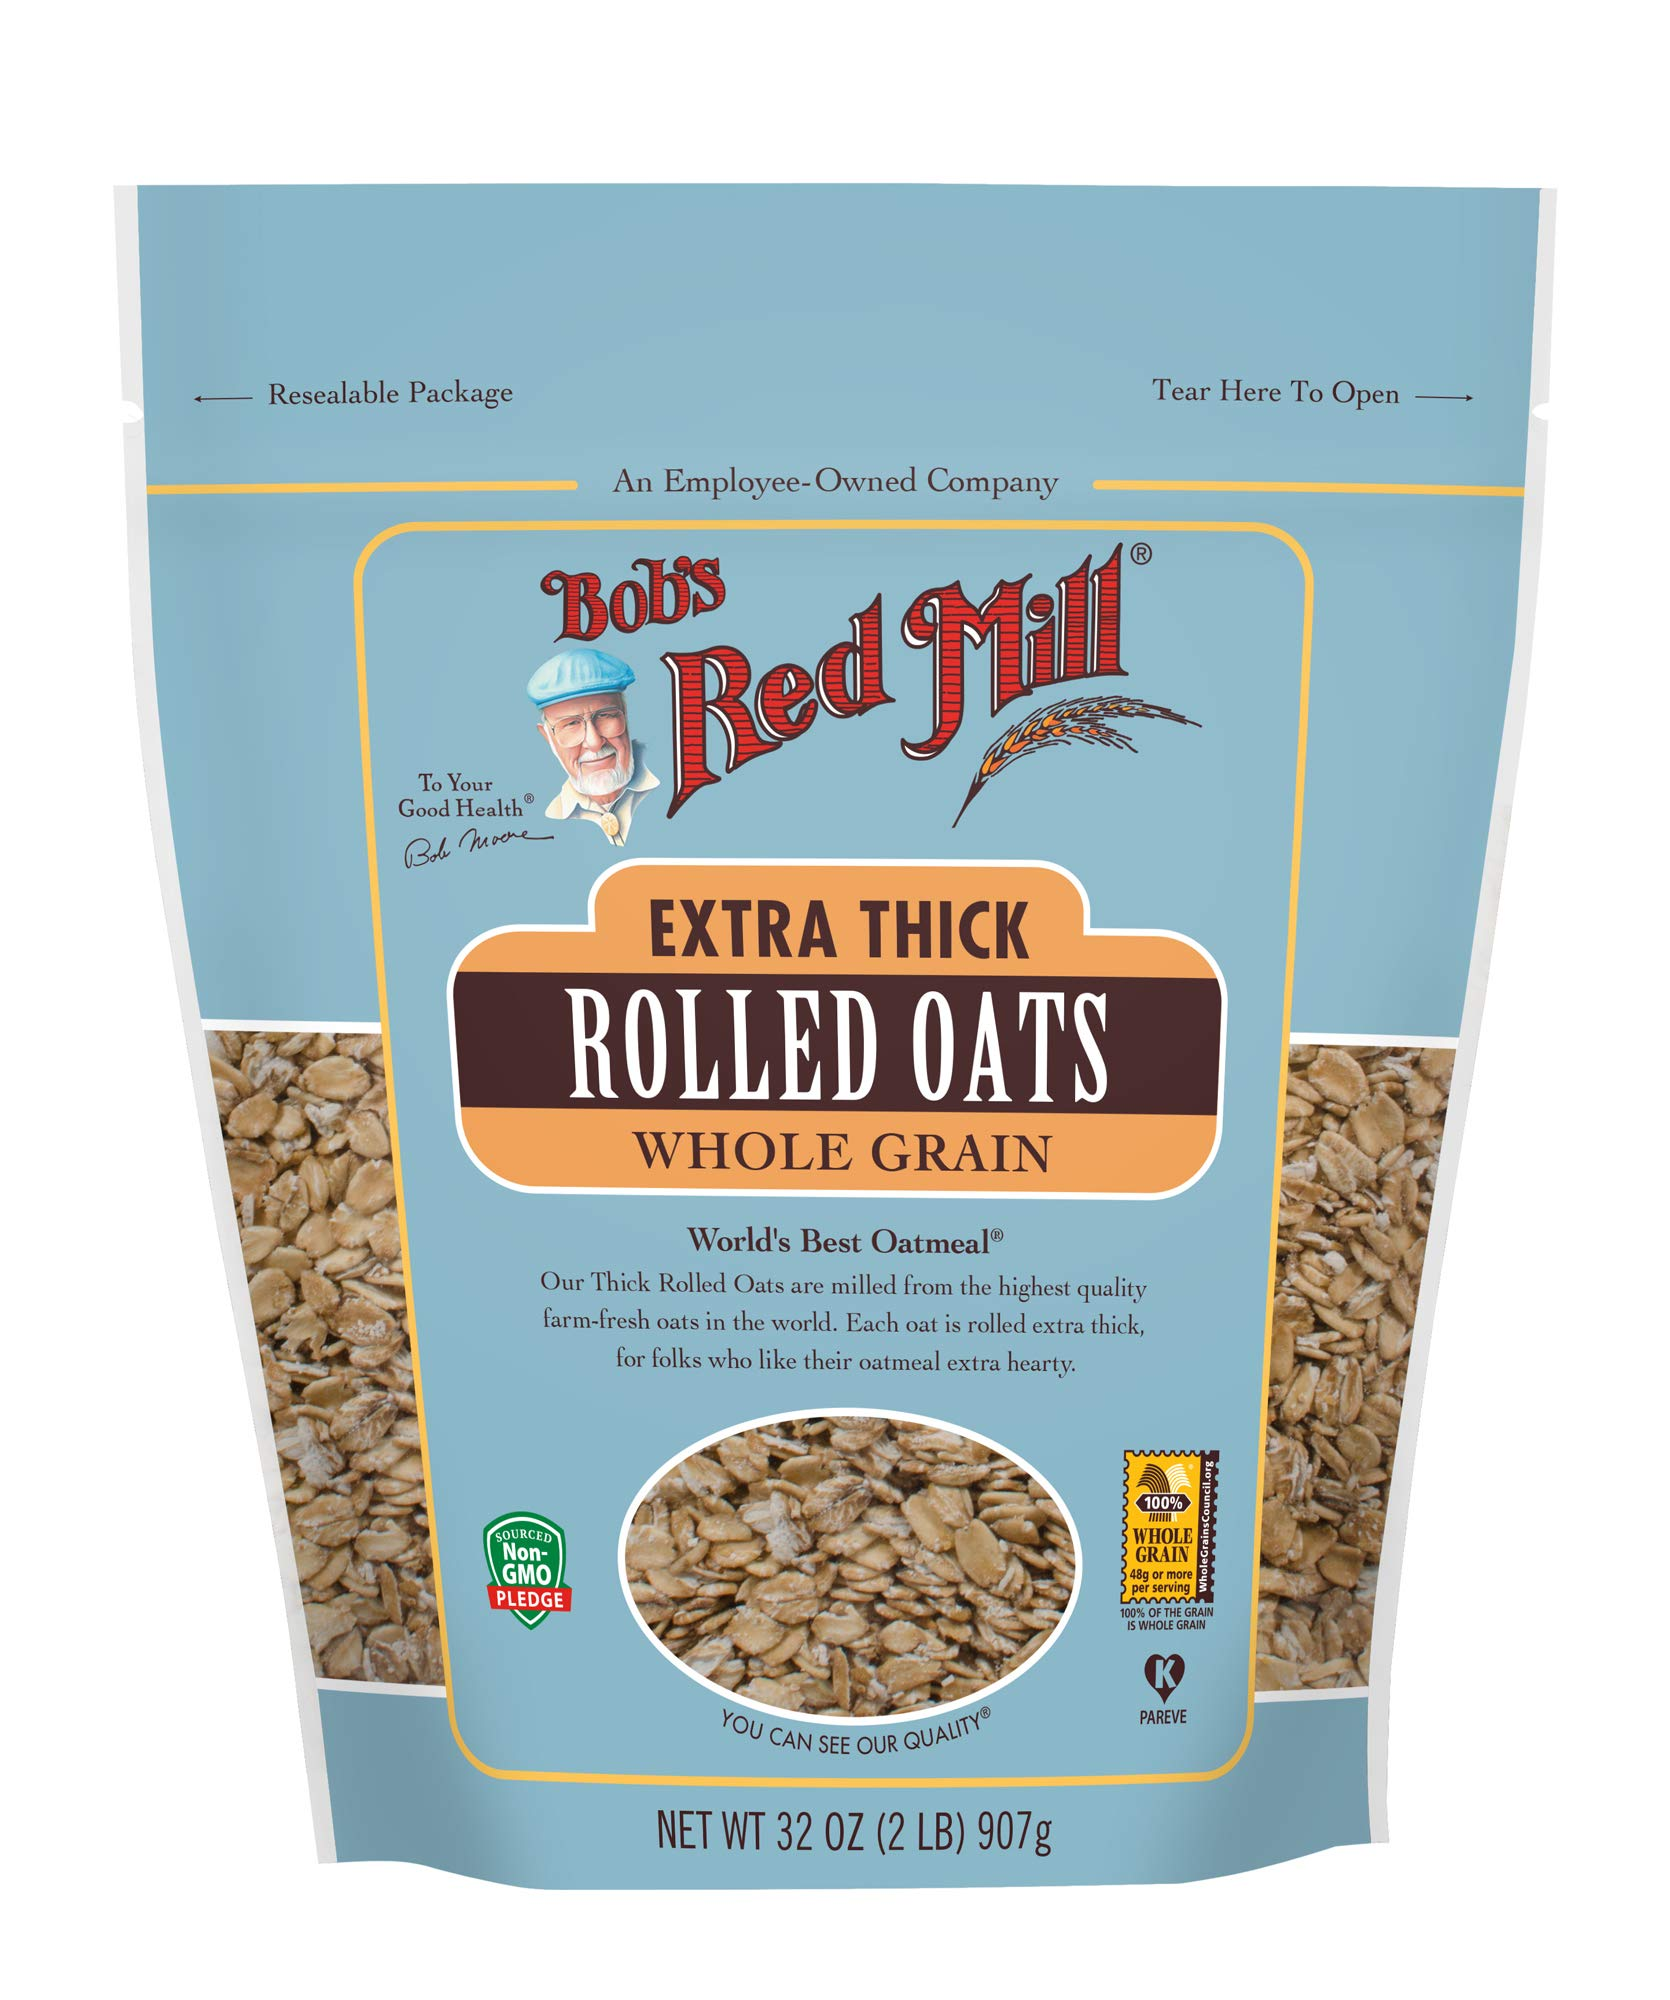 Bob's Red Mill Organic Extra Thick Rolled Oats, 32 Oz (4 Pack) by Bob's Red Mill (Image #2)